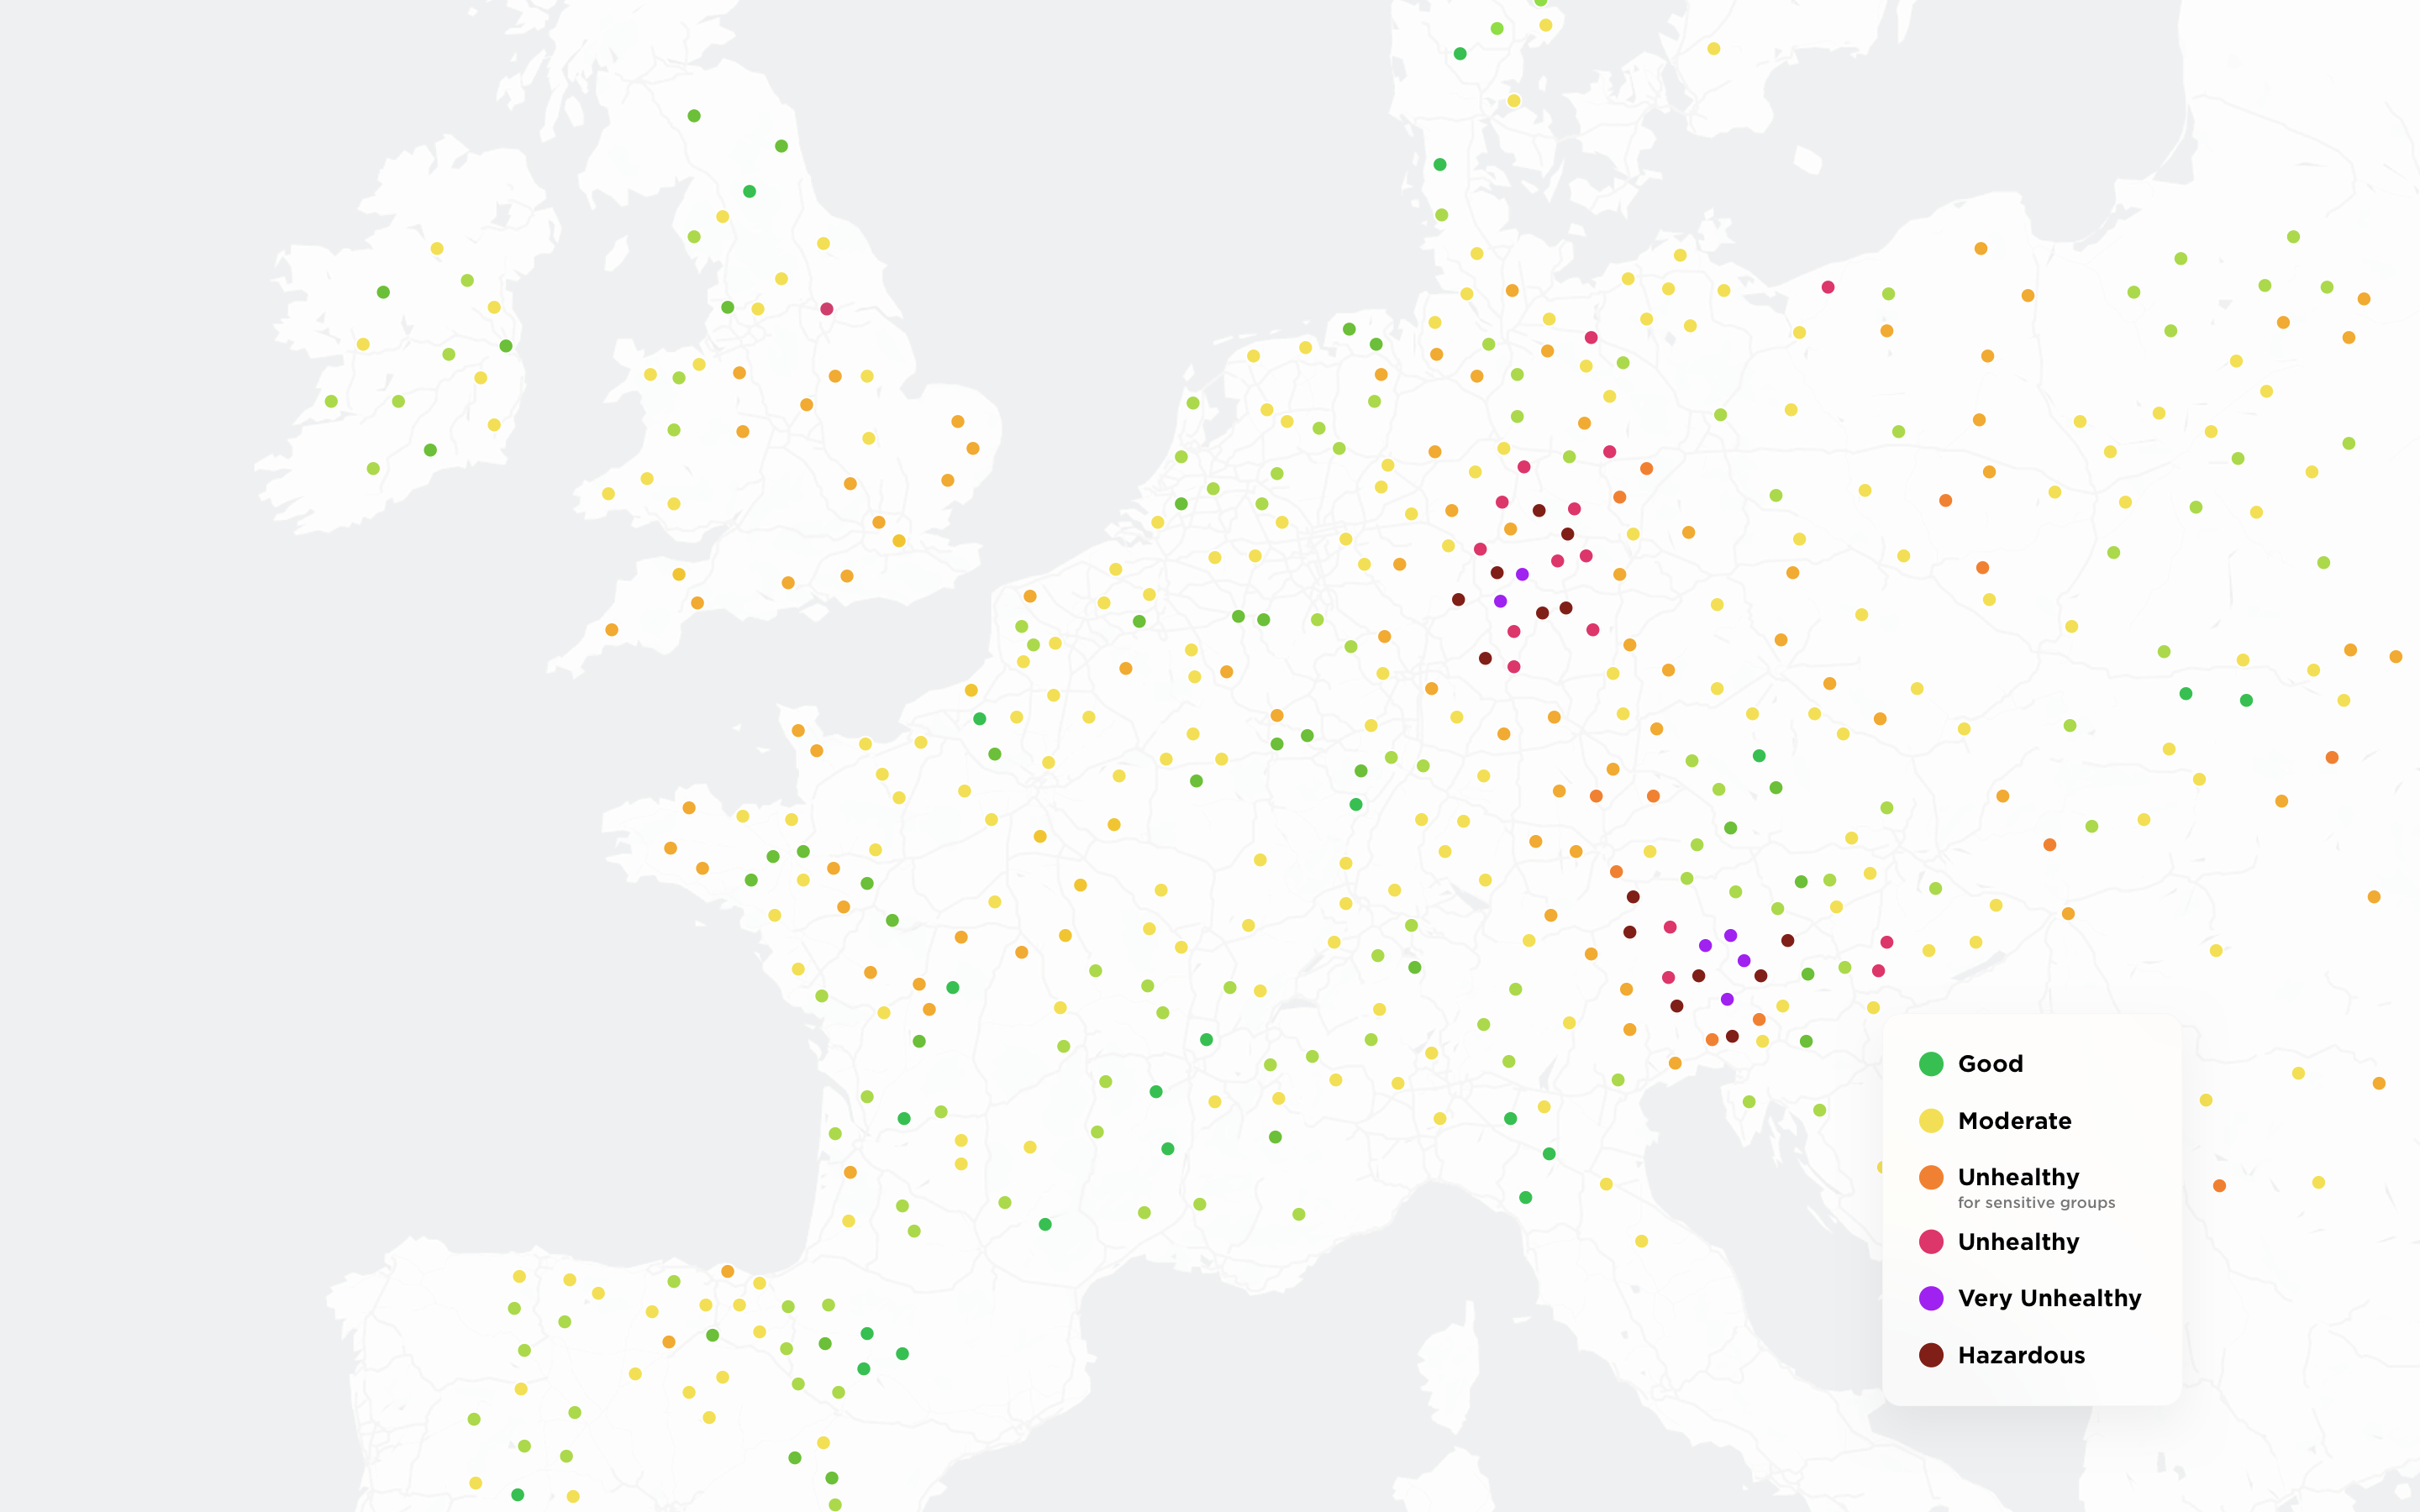 Colorful map showing levels of pollution in different regions